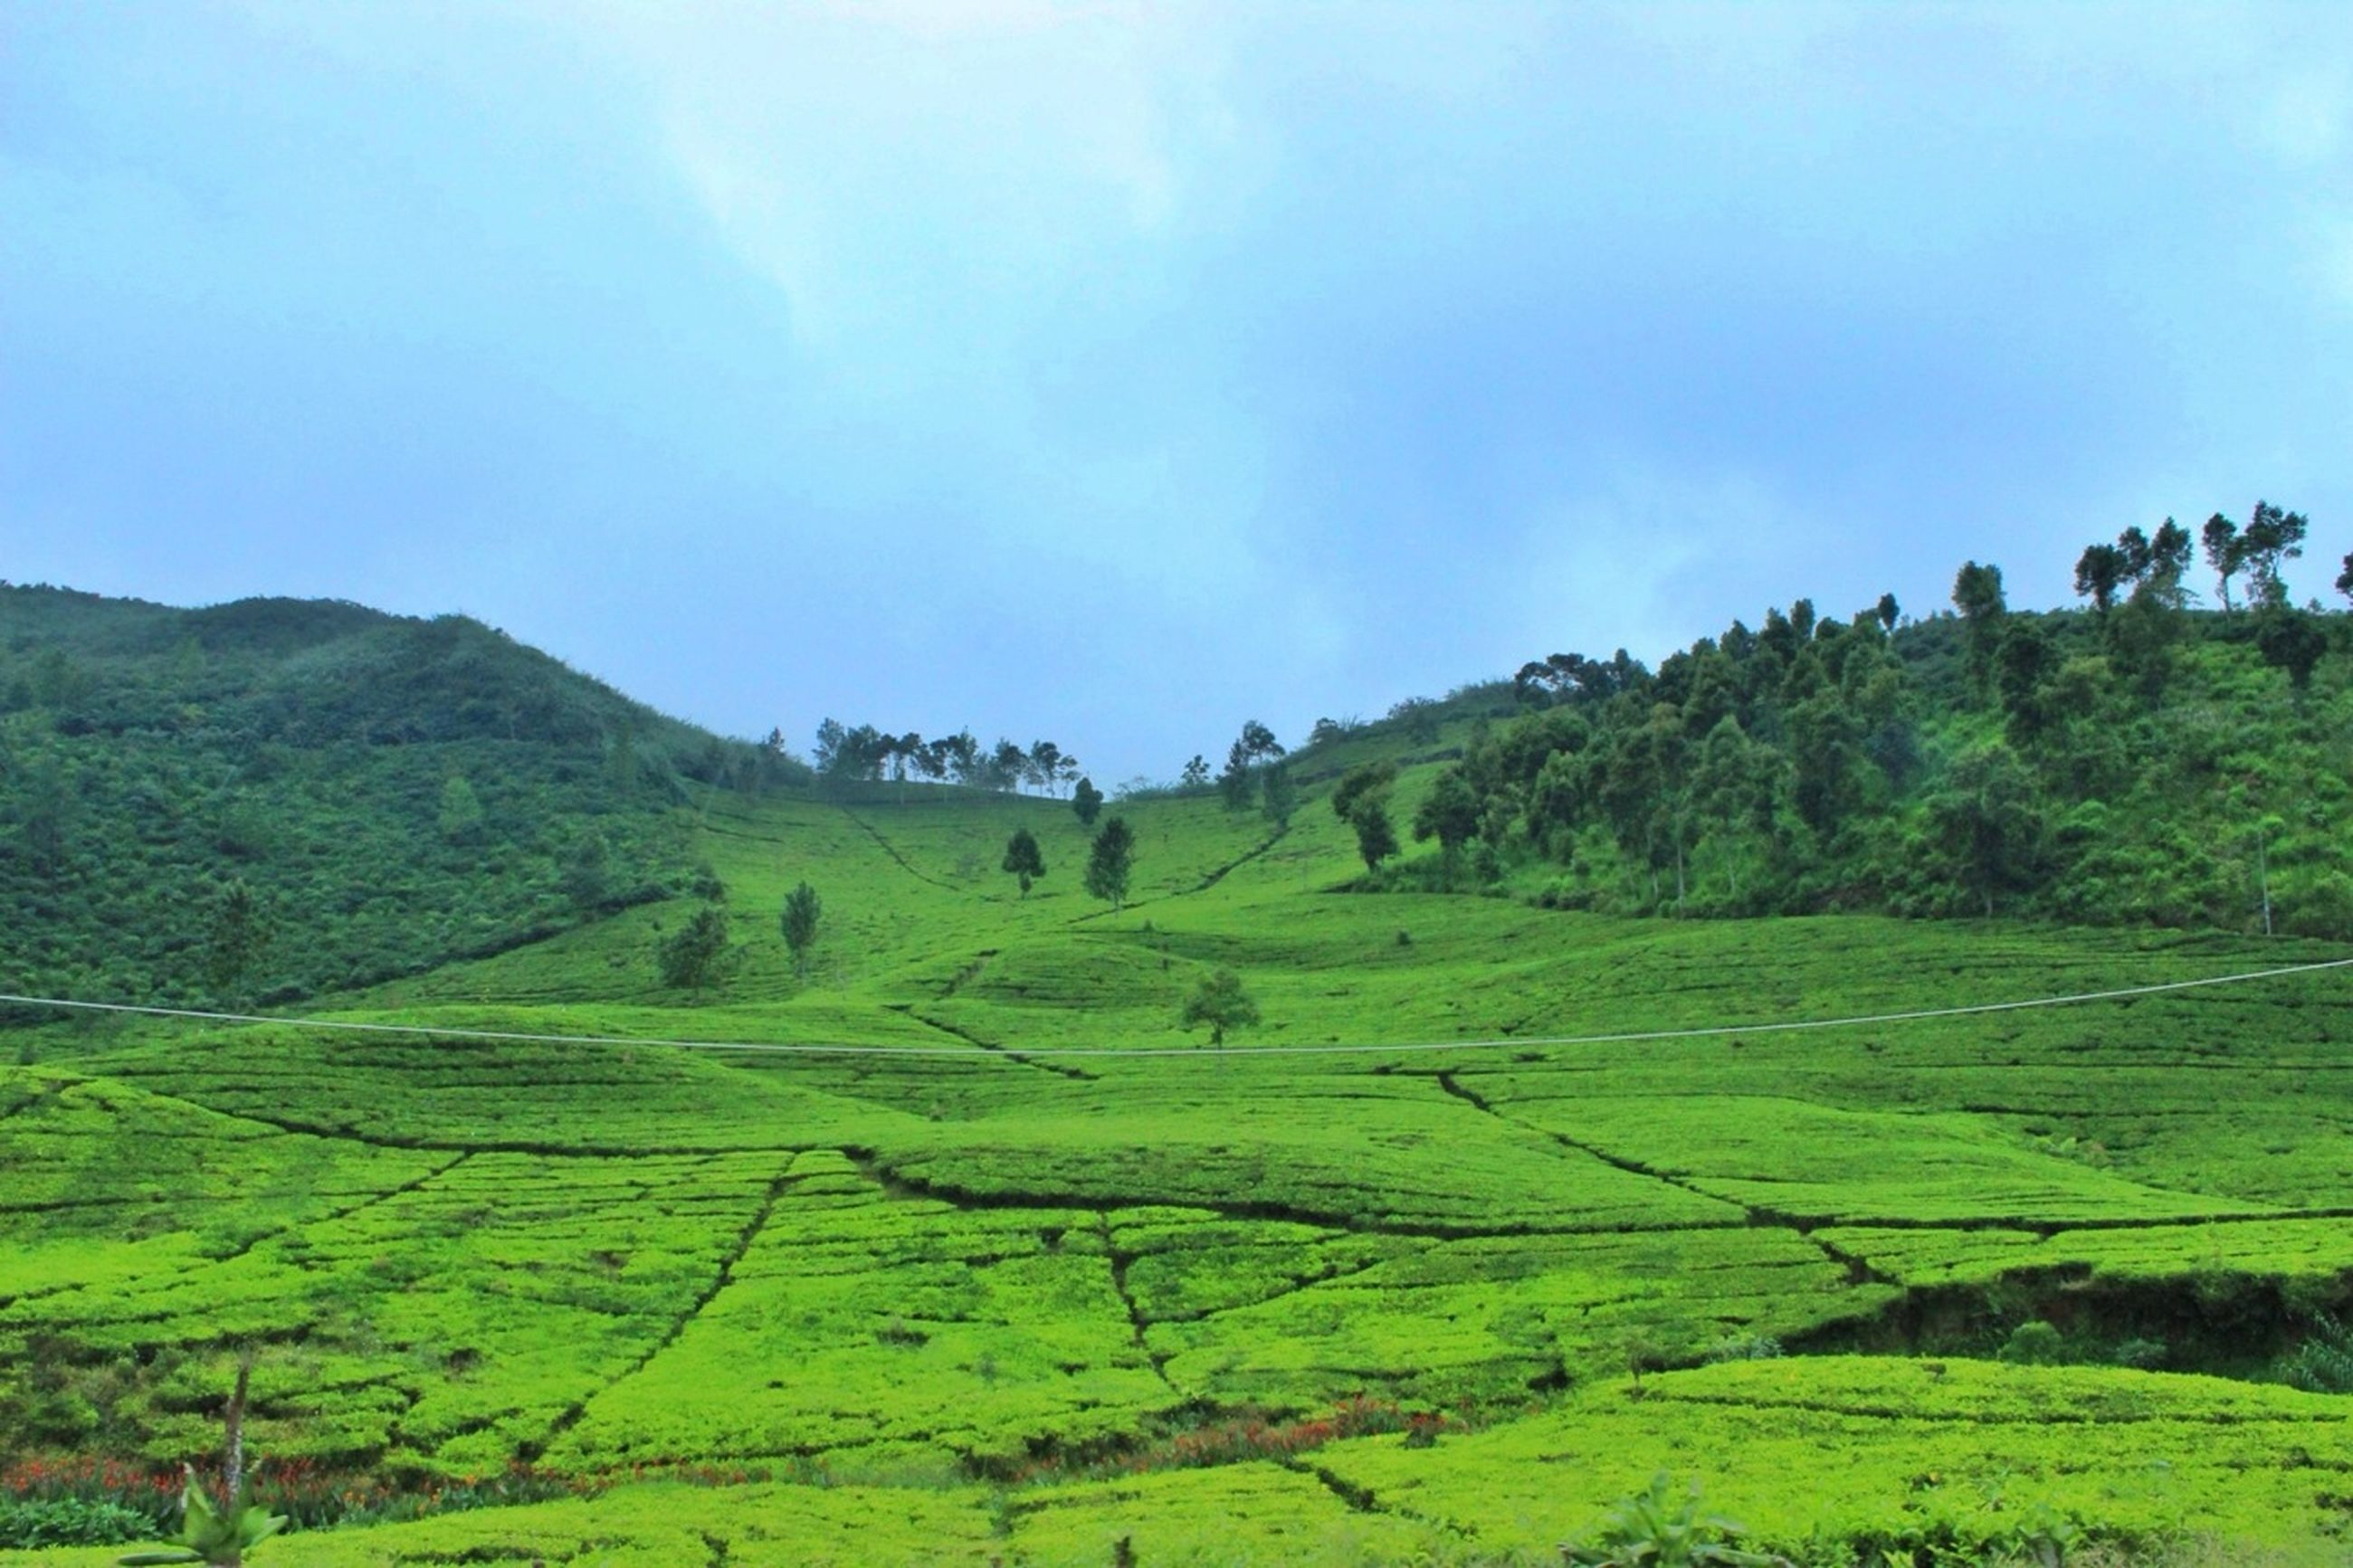 green color, tranquil scene, tranquility, landscape, scenics, beauty in nature, mountain, nature, sky, growth, tree, green, grass, lush foliage, field, non-urban scene, idyllic, day, plant, outdoors